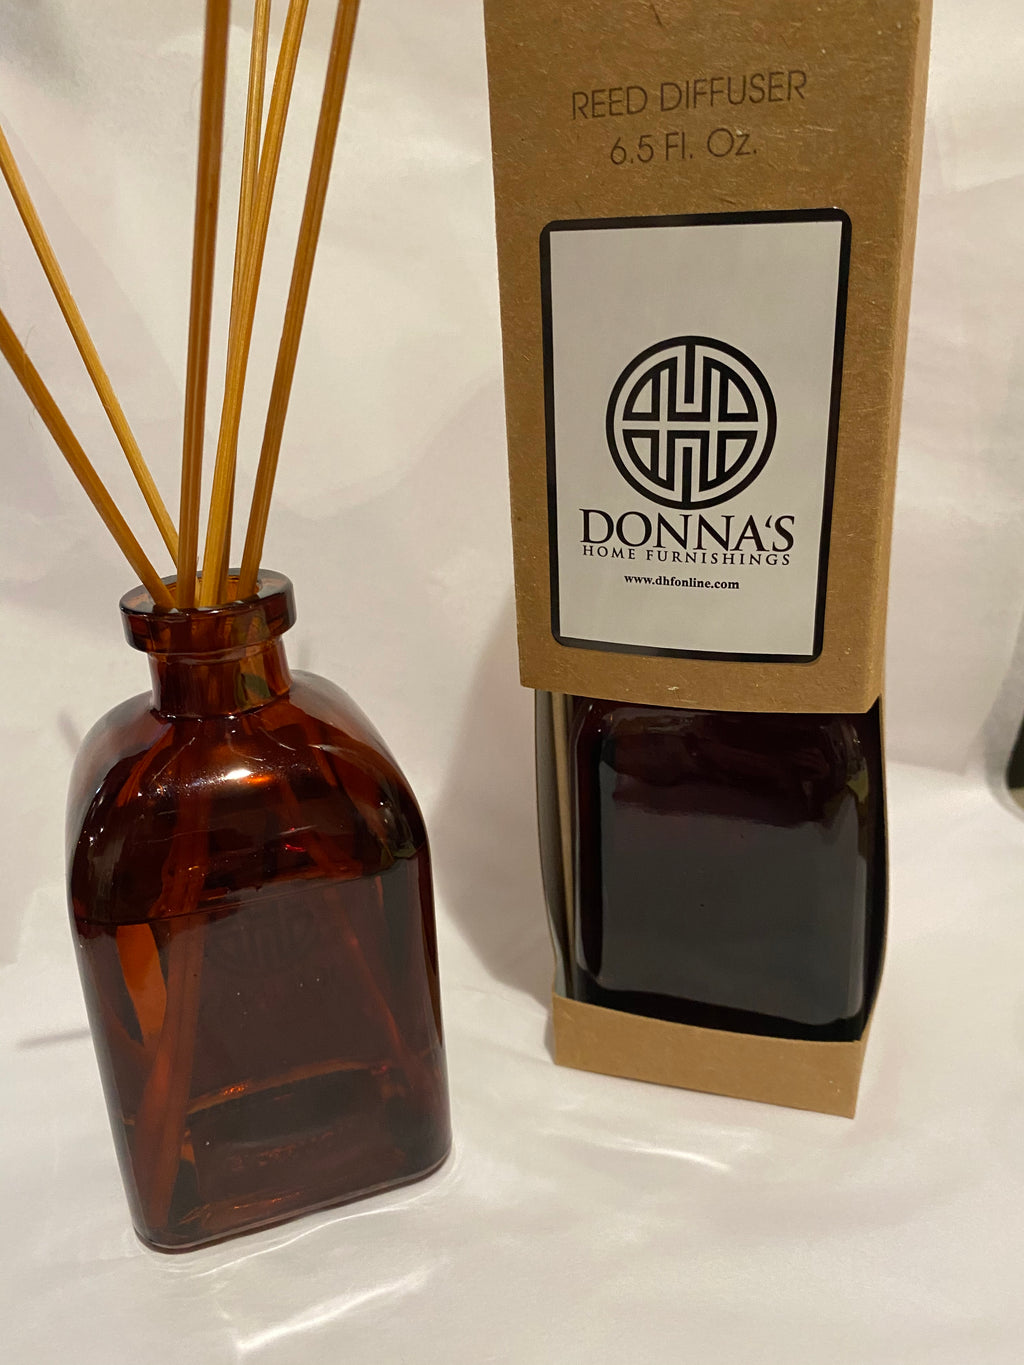 DIFFUSER DONNA'S SIGNATURE SCENT - Donna's Home Furnishings in Houston